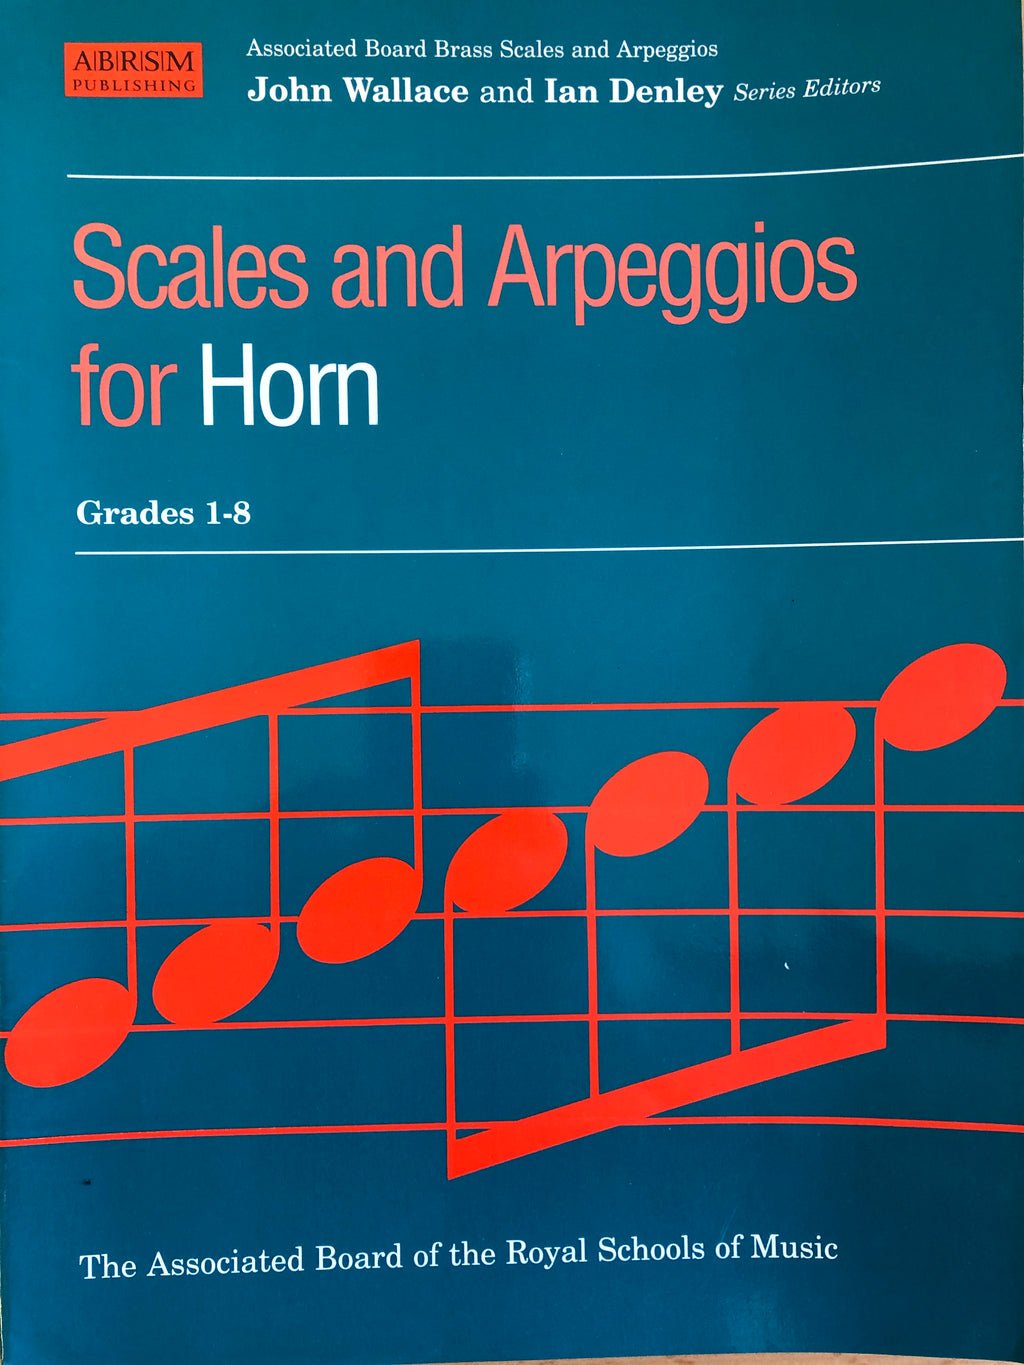 Scales and Arpeggios for Horn, Grades 1-8 - Scattando Verkleedhuis